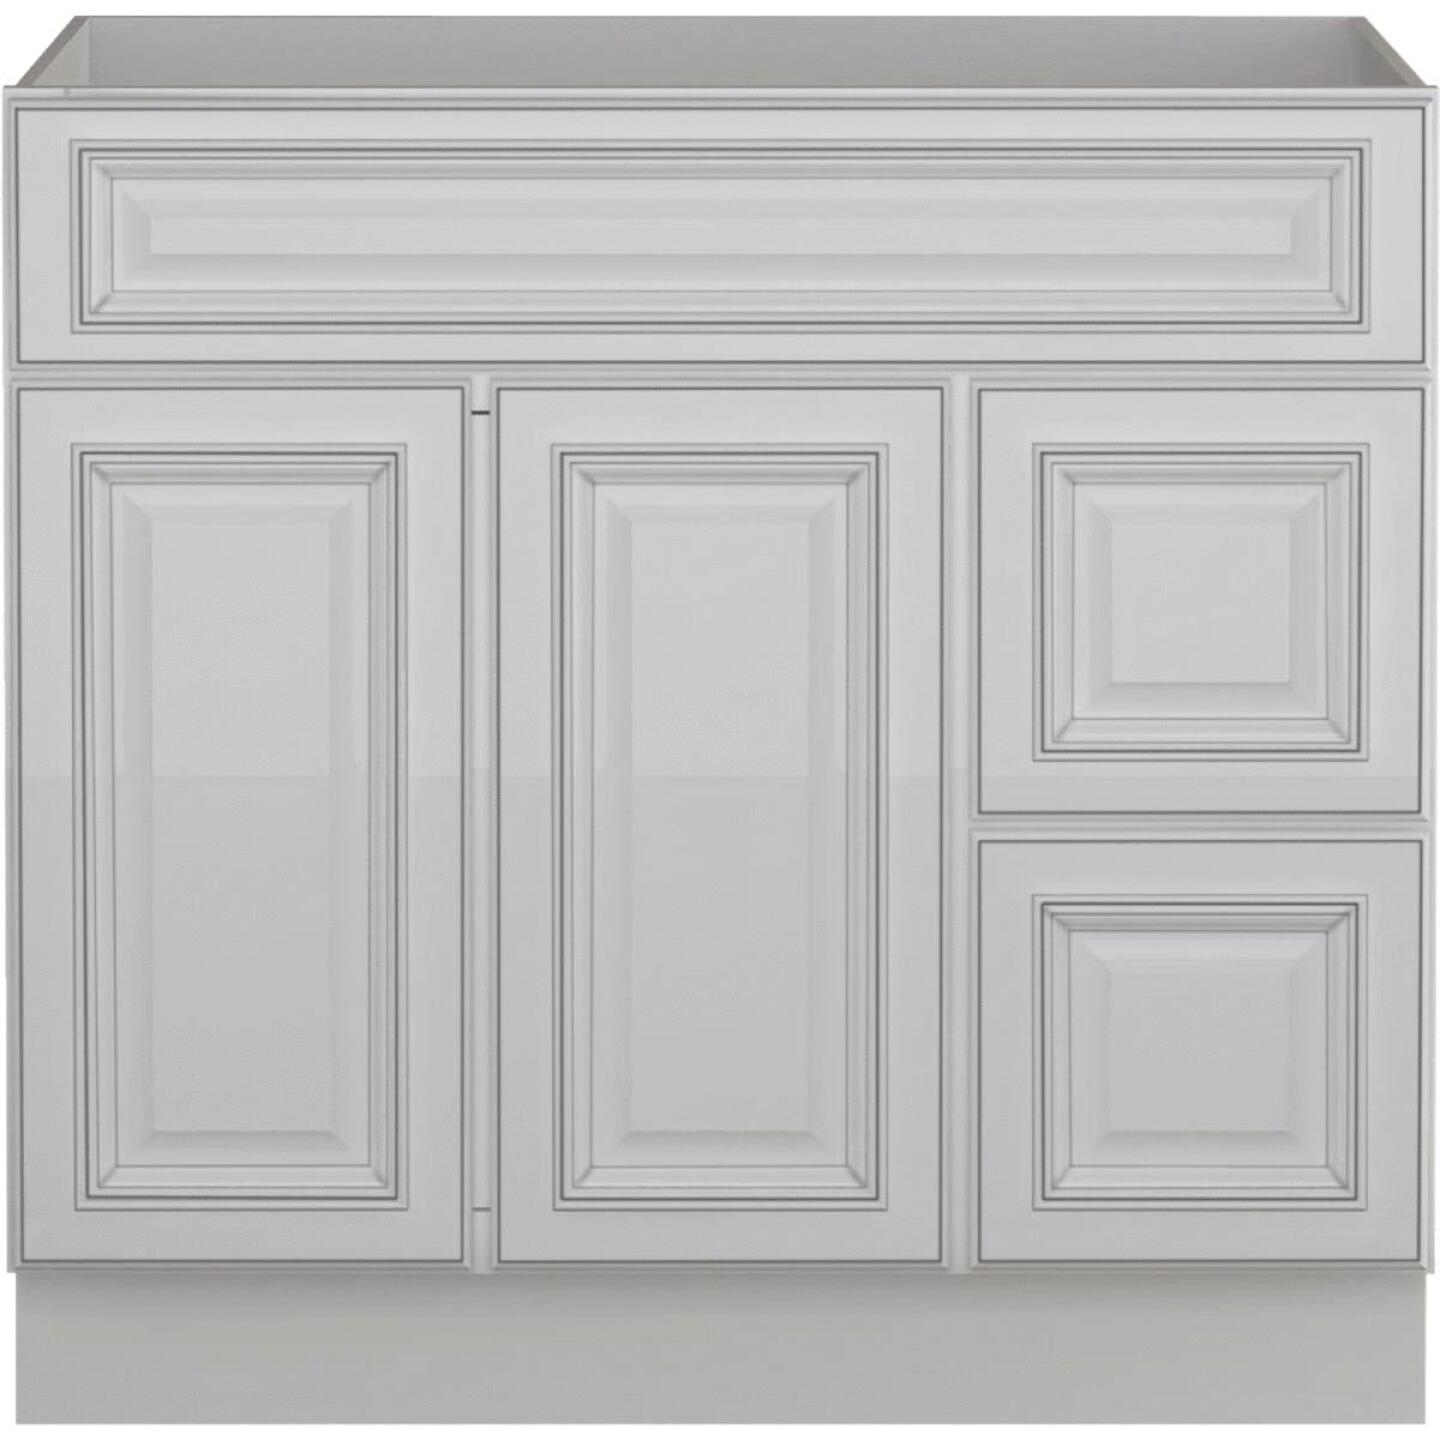 Sunny Wood Riley White with Dover Glaze 36 In. W x 34-1/2 In. H x 21 In. D Vanity Base, 2 Door/RH 2 Drawer Image 1